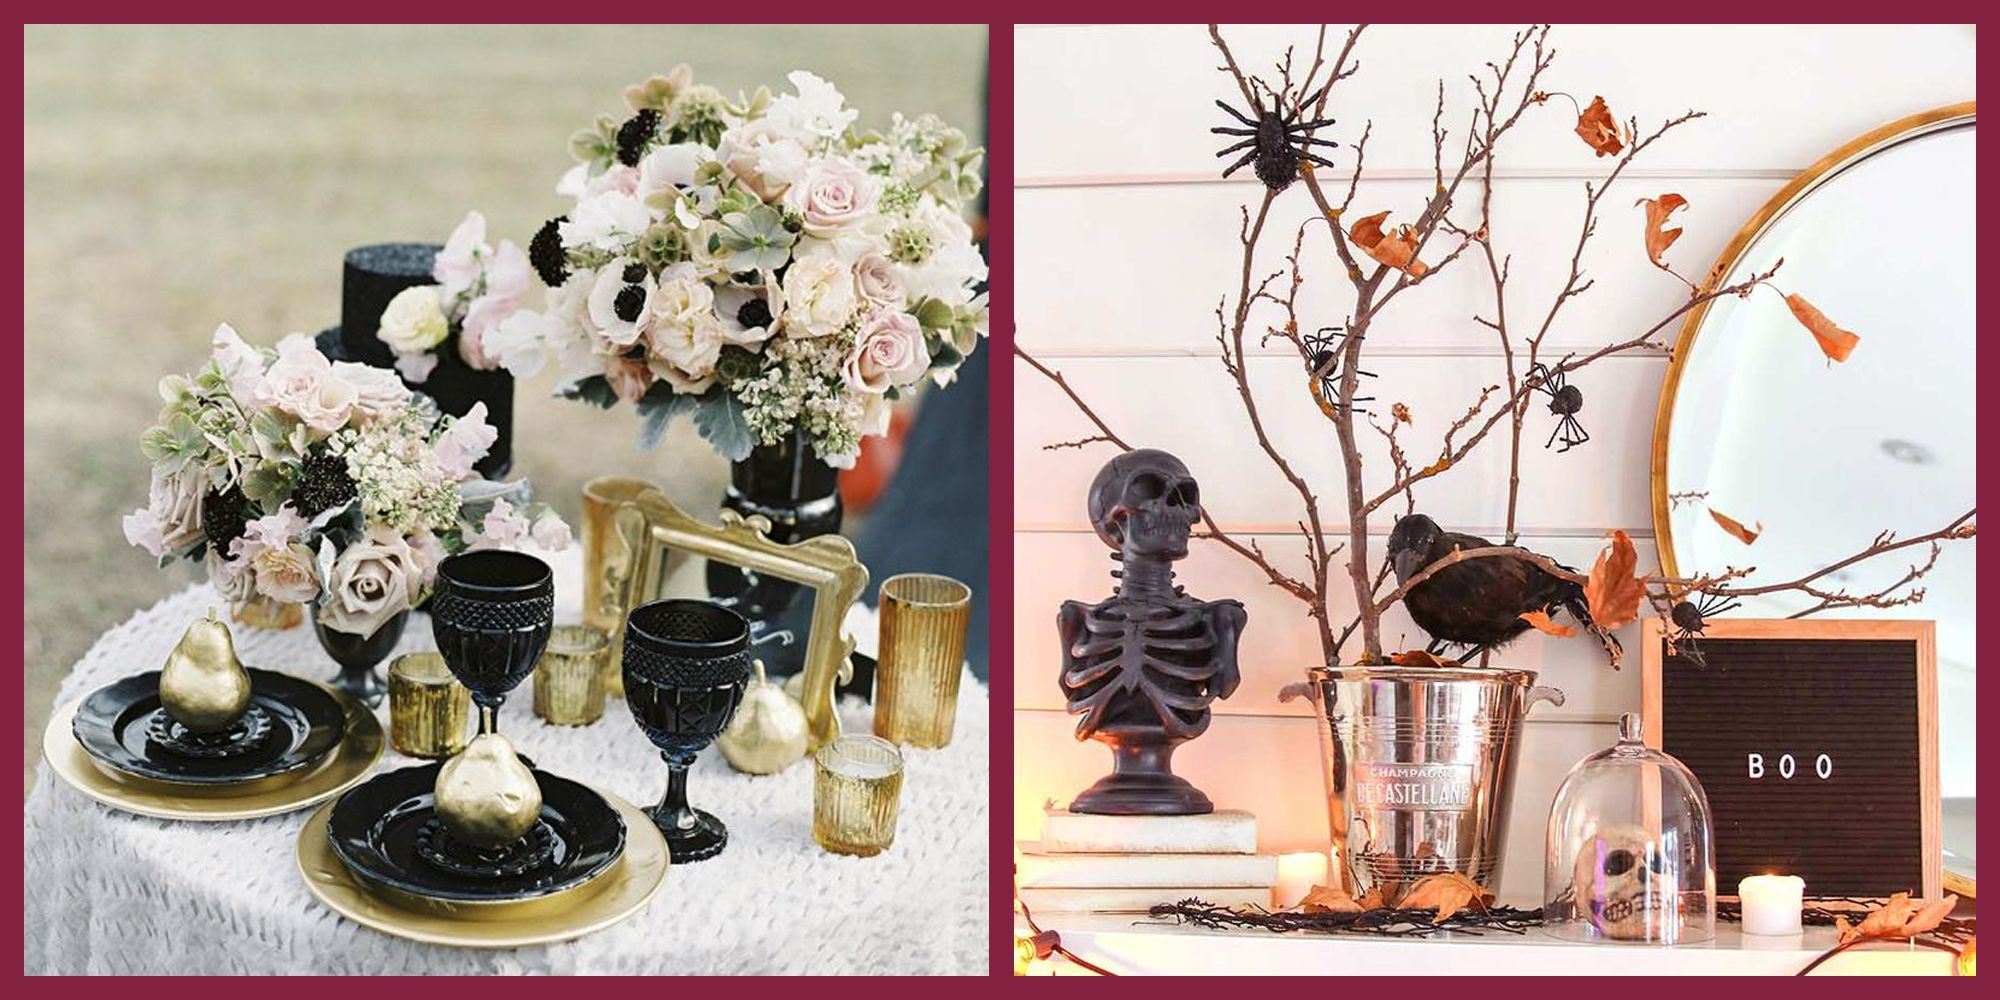 42 Elevated Halloween Decor Ideas That Cast a Stylish Spell